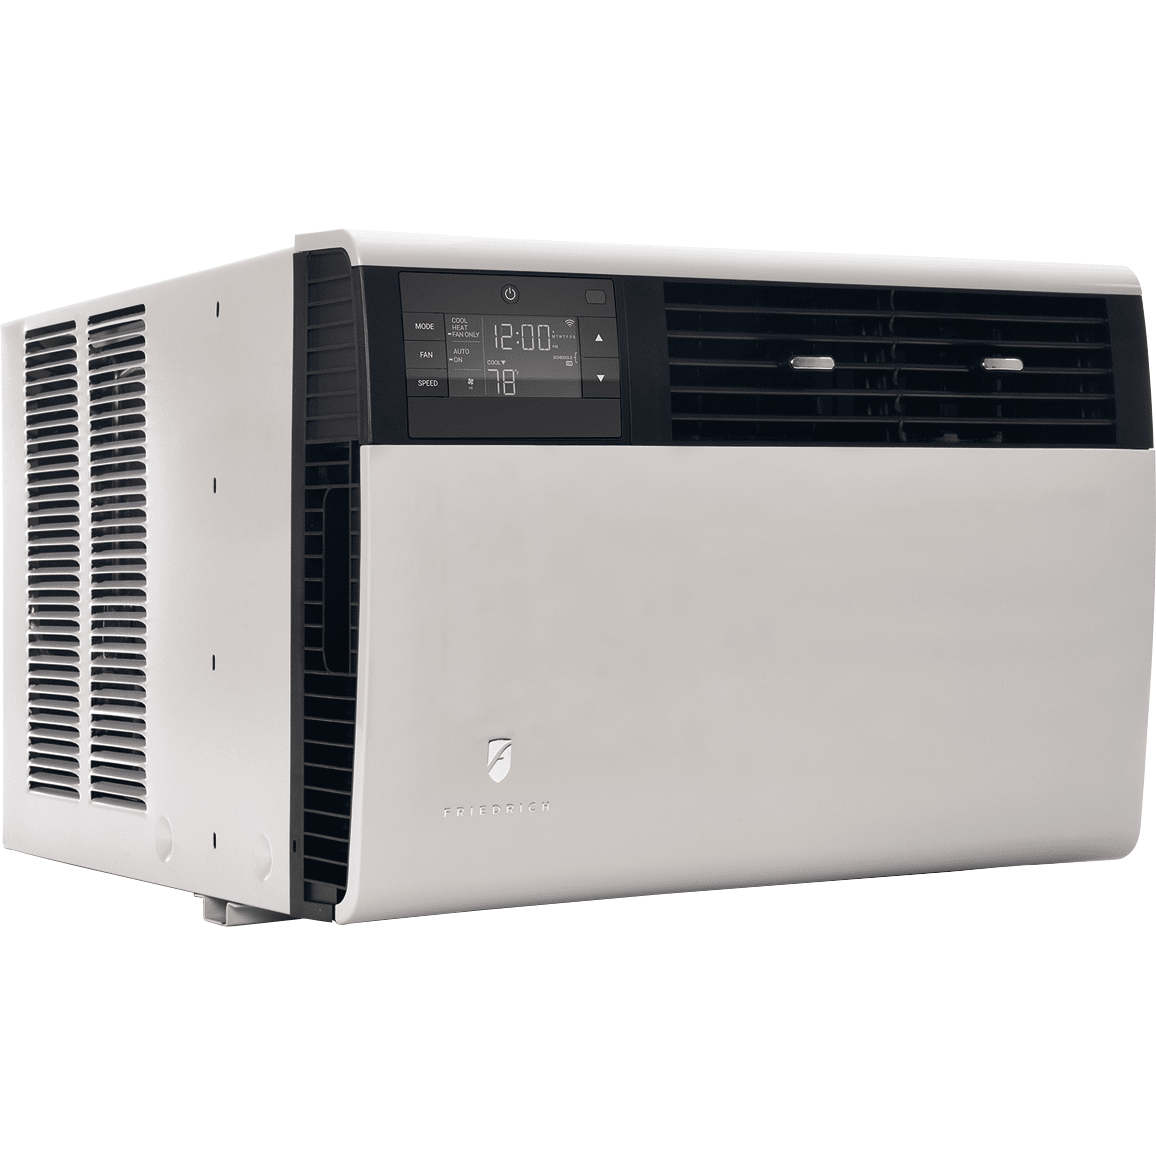 Friedrich Kuhl 6,000 BTU Window Air Conditioner